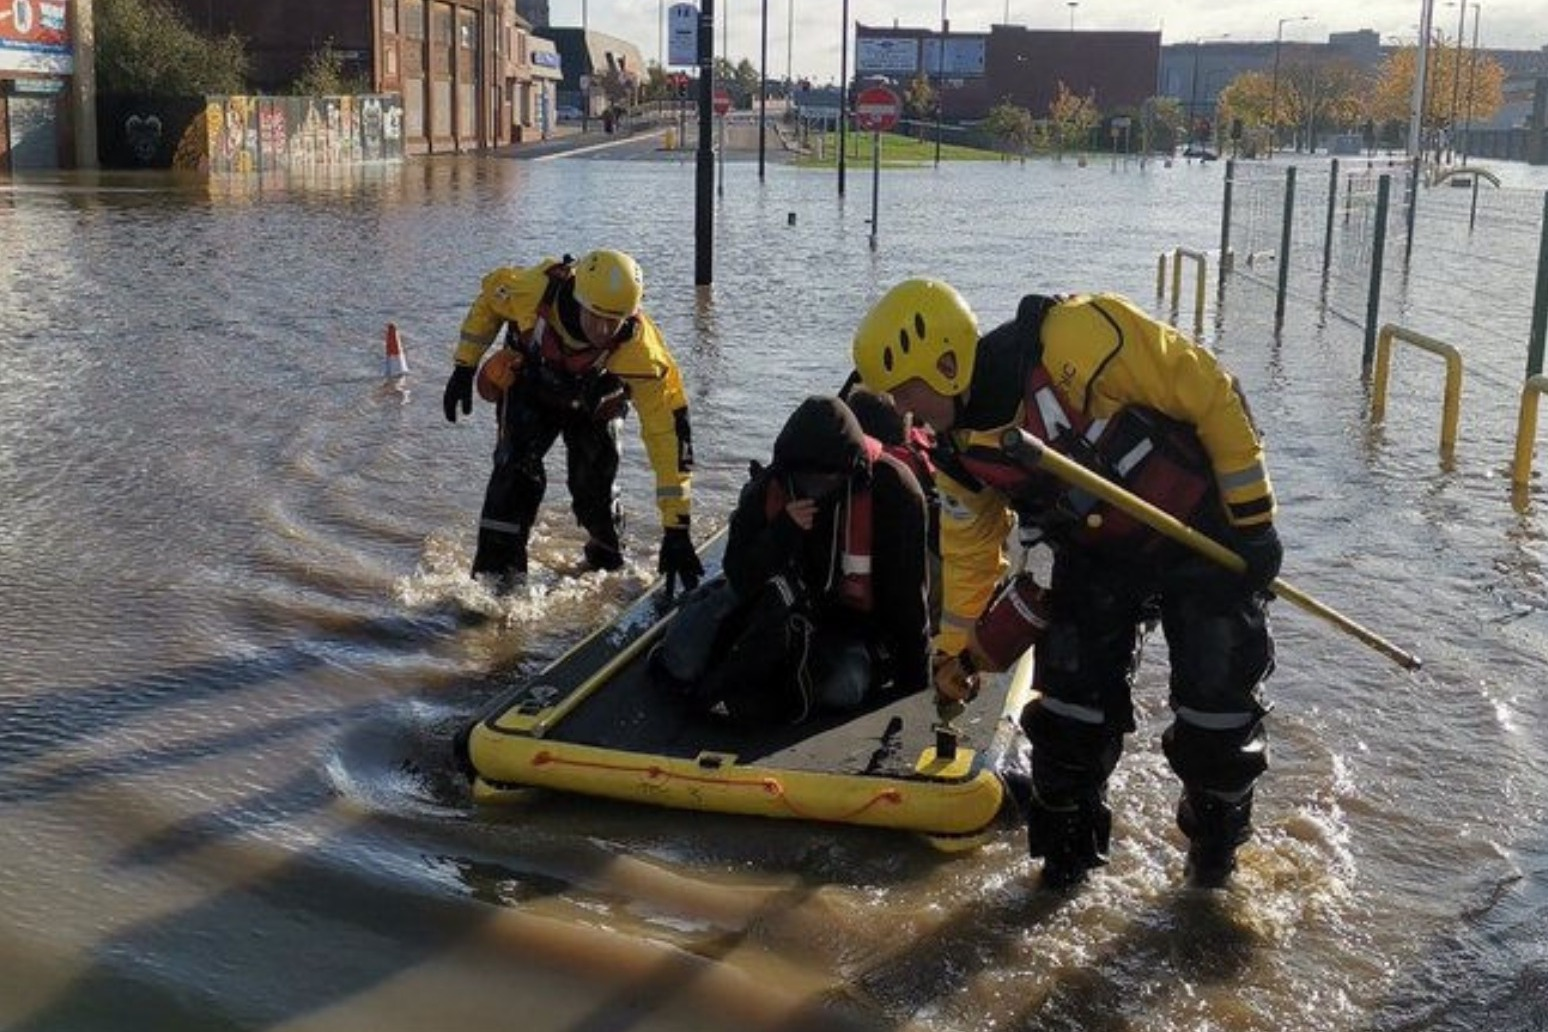 BORIS JOHNSON URGES PEOPLE IN FLOOD HIT AREAS TO HEED EMERGENCY SERVICE ADVICE